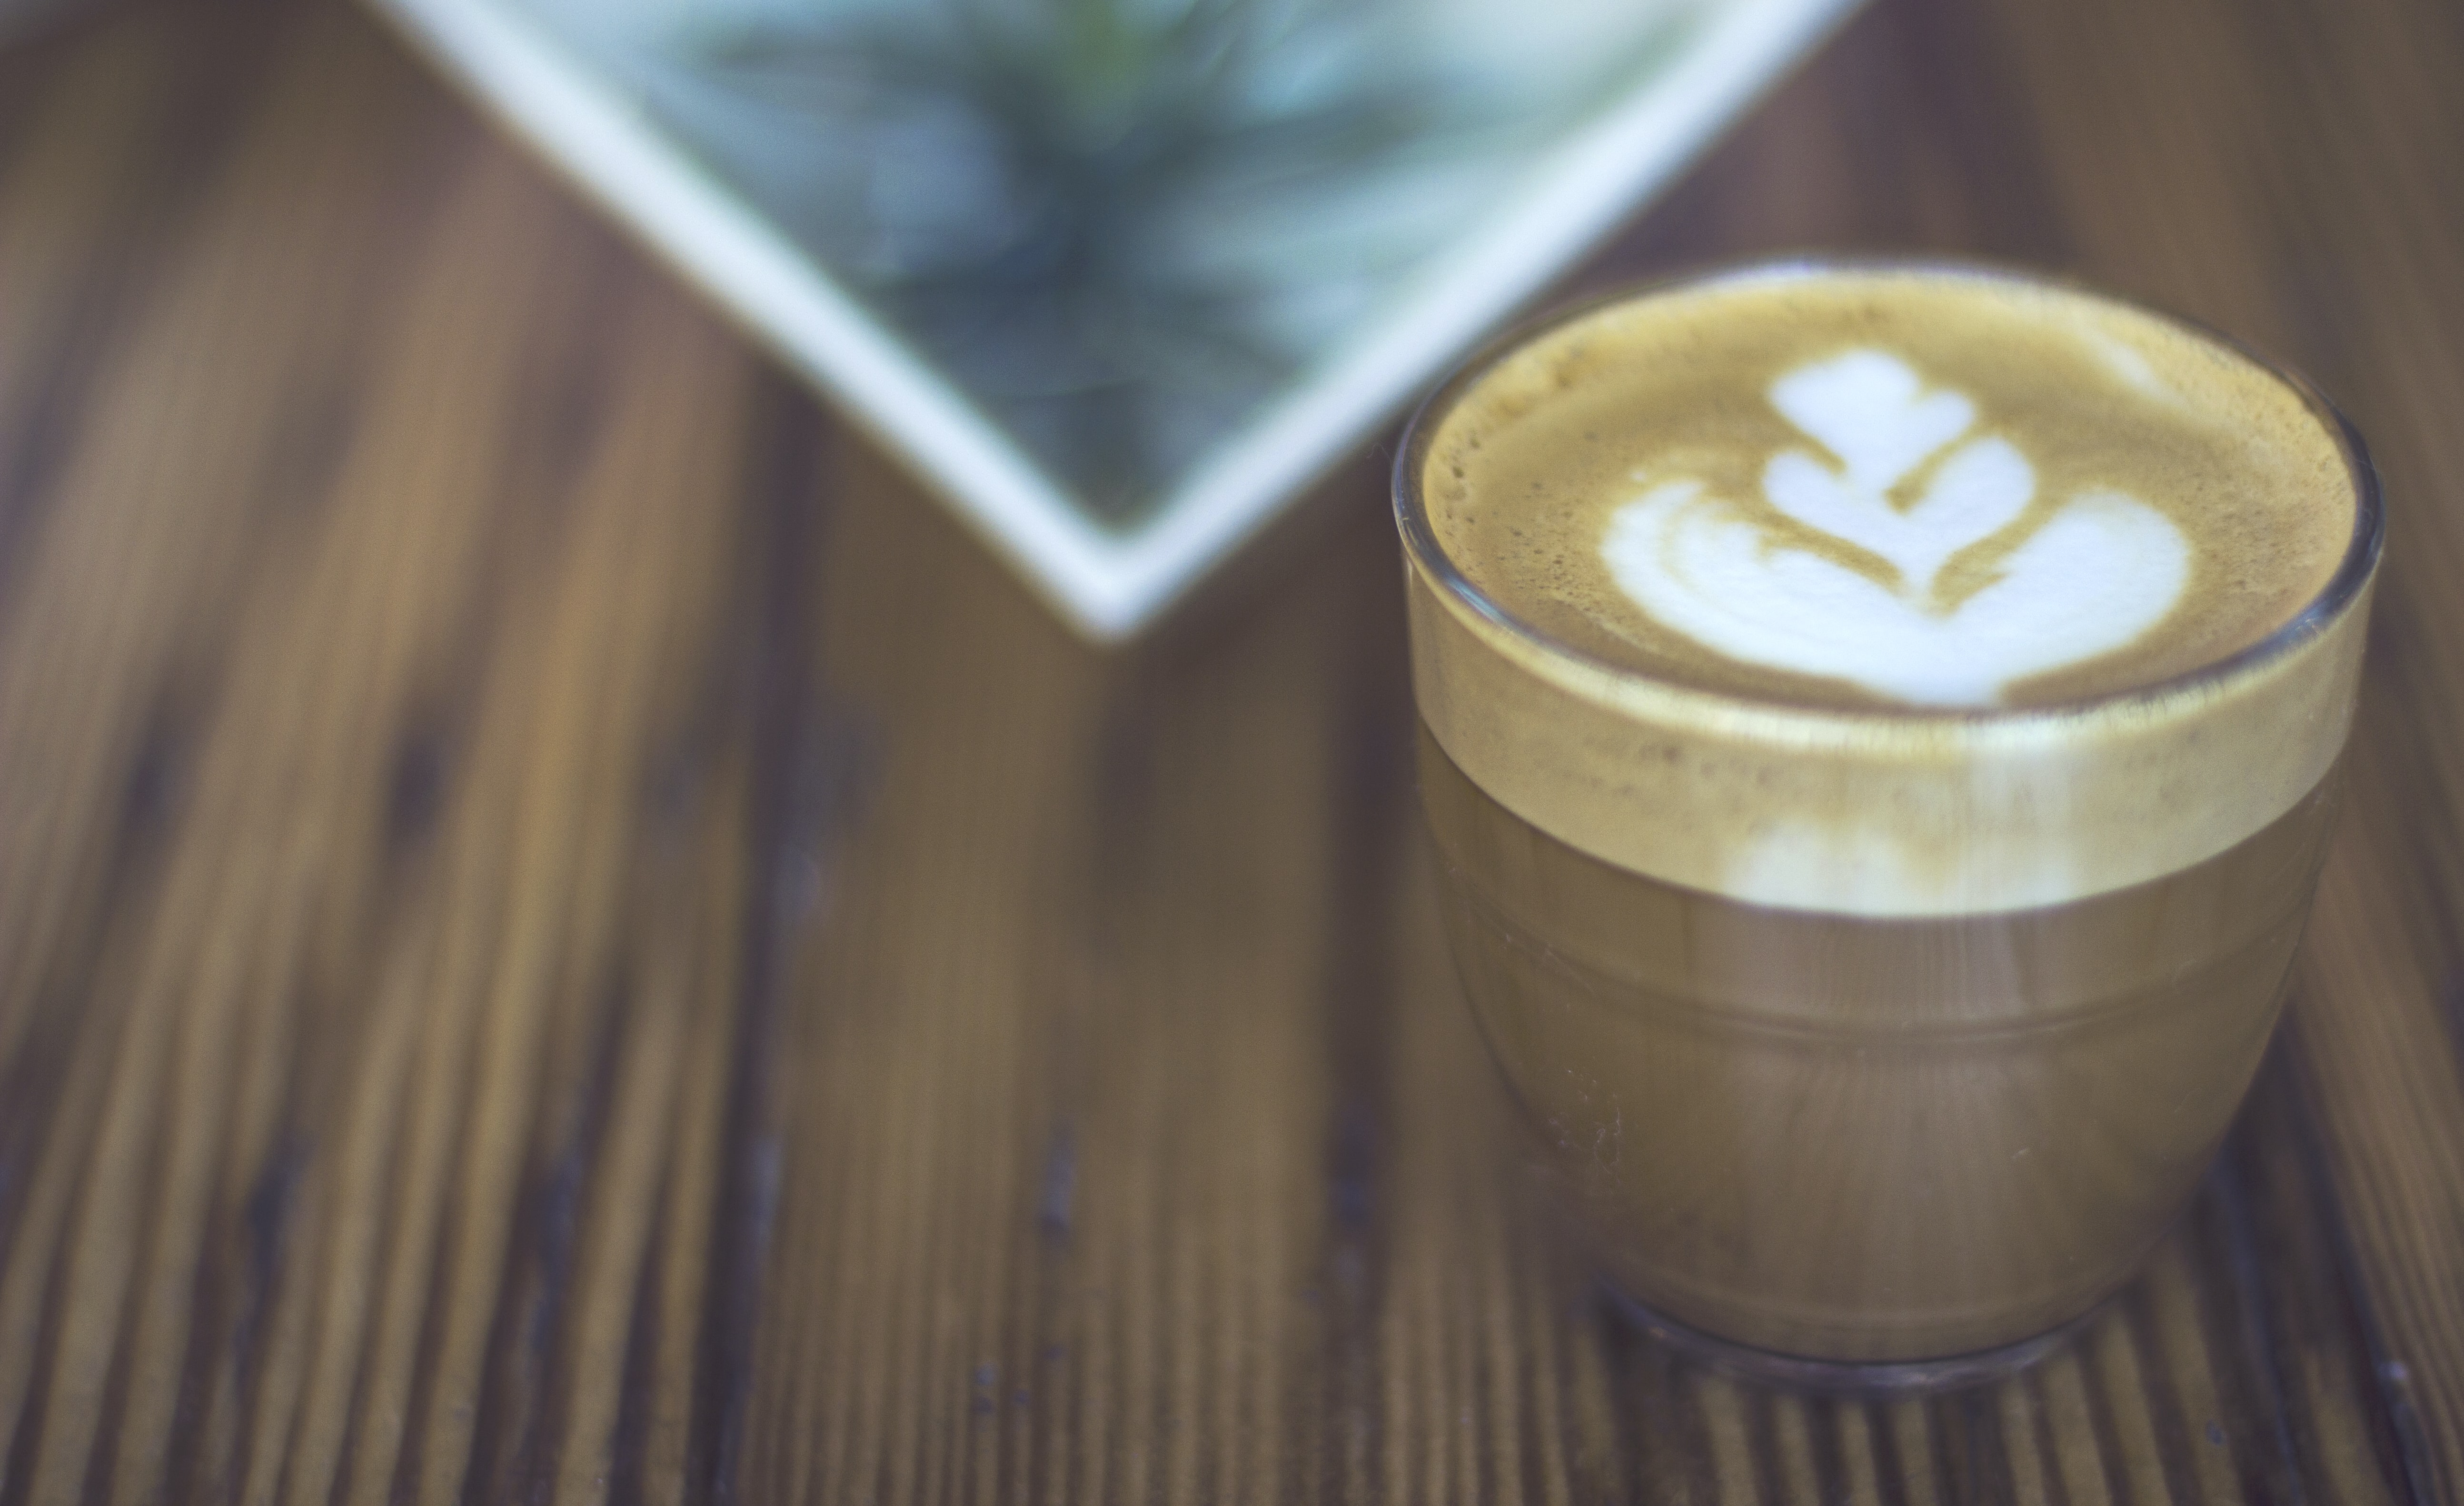 A cup of coffee with latte art in a glass on a wooden table in Cincinnati